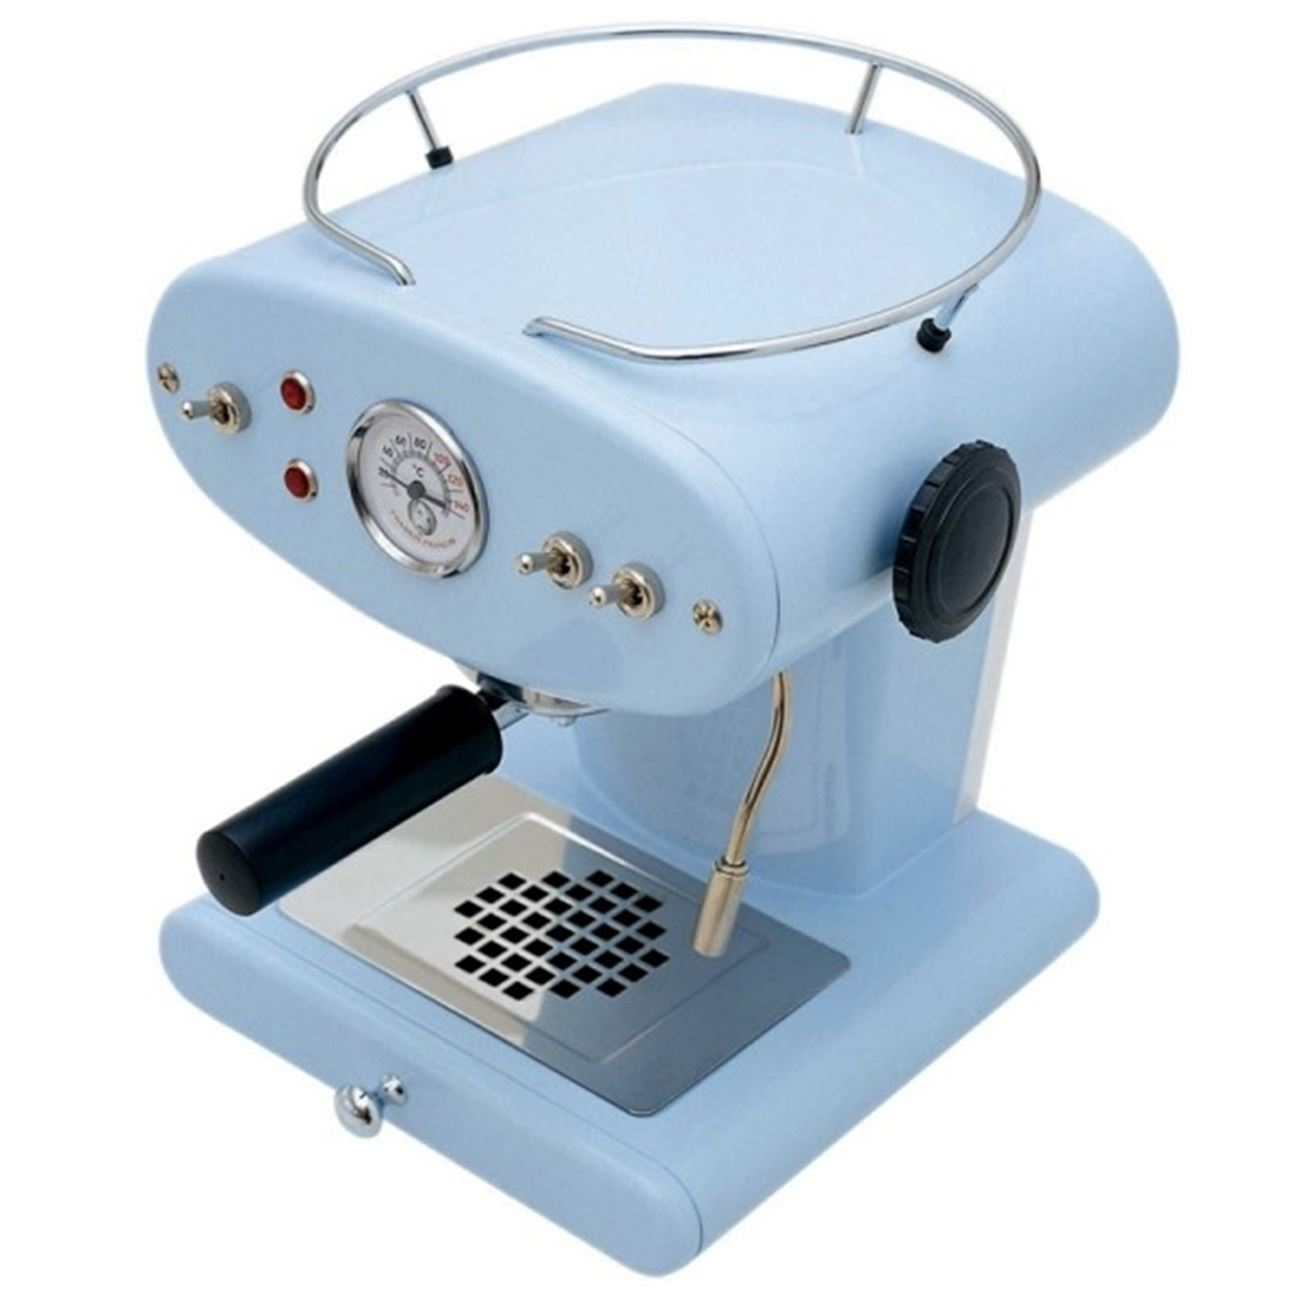 FRANCIS FRANCIS X1 TRIO PROFESSIONAL LIGHT BLUE < Illy espresso ...